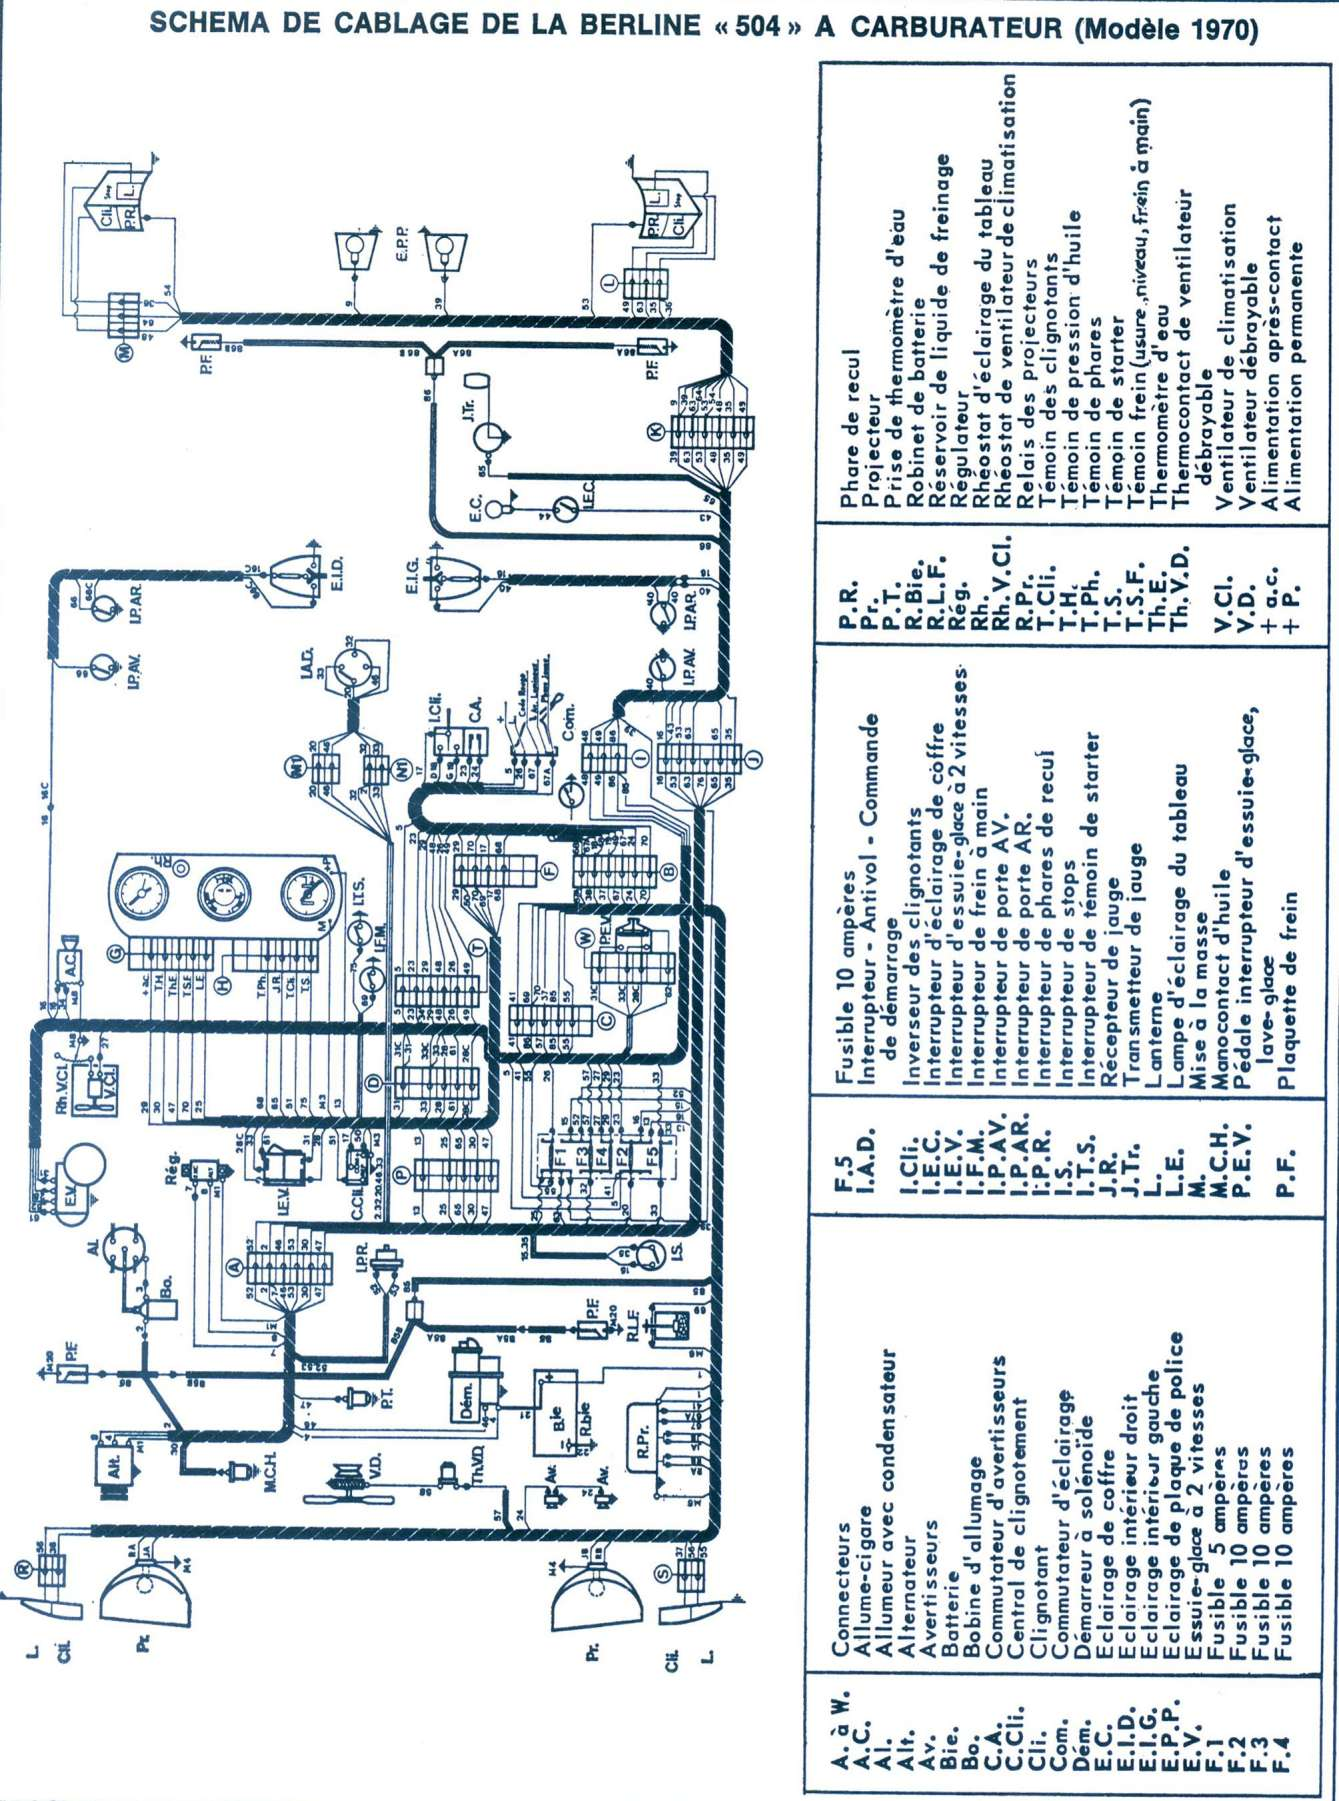 Wiring Diagram Peugeot User Guide - WIRE Center •